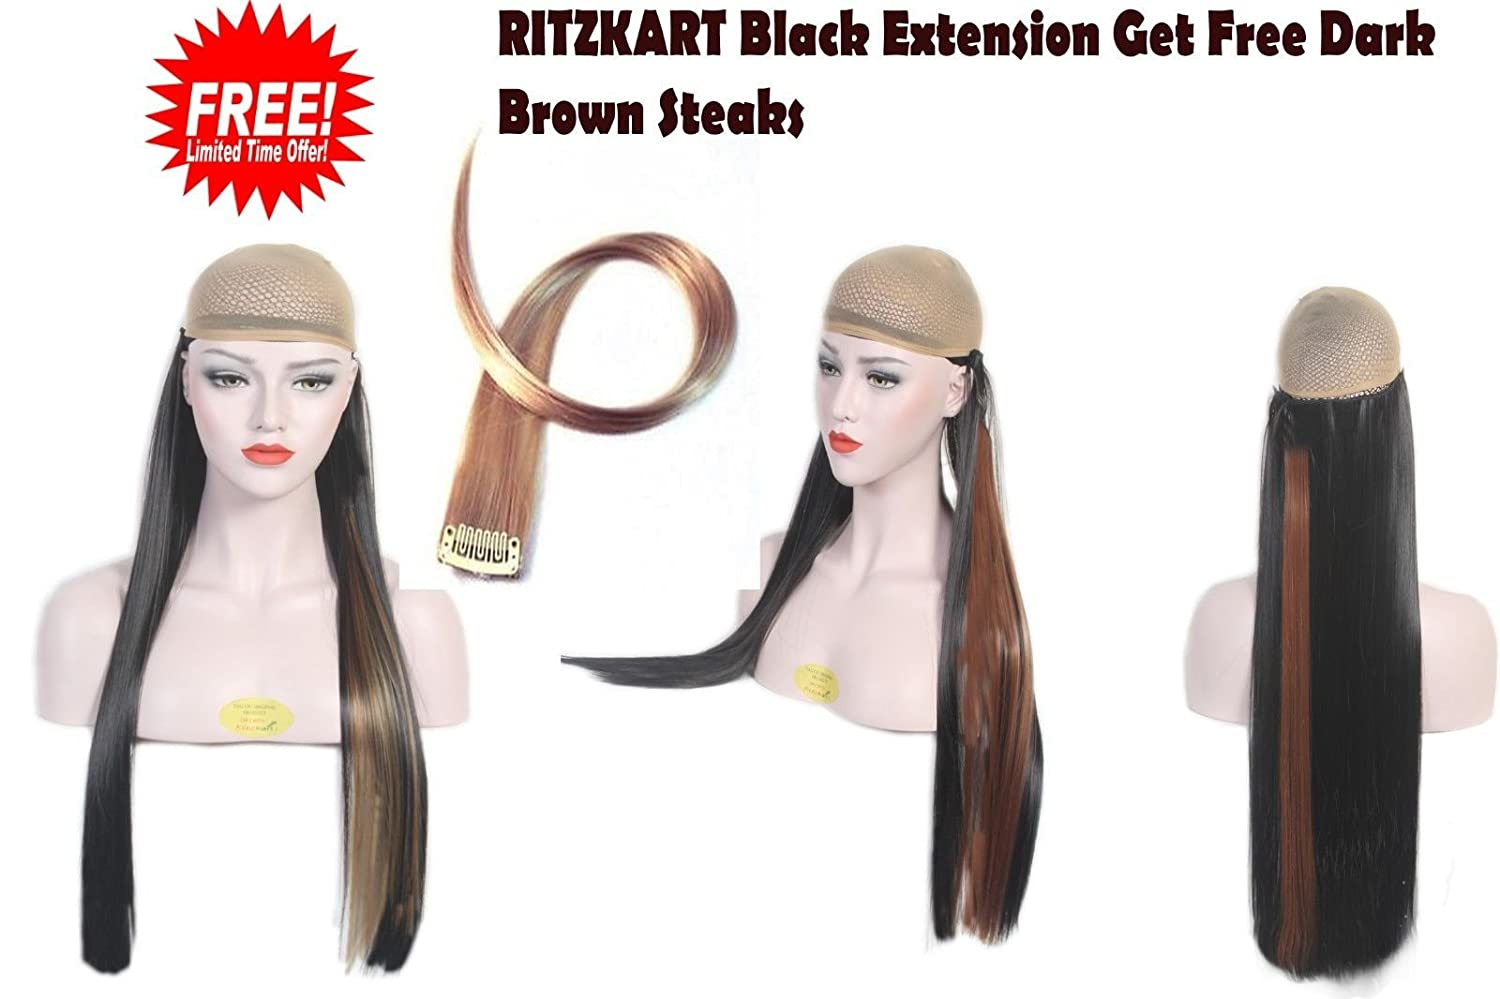 Ritzkart 25inc Black Straight Hair Extension Get Offer Dark Brown